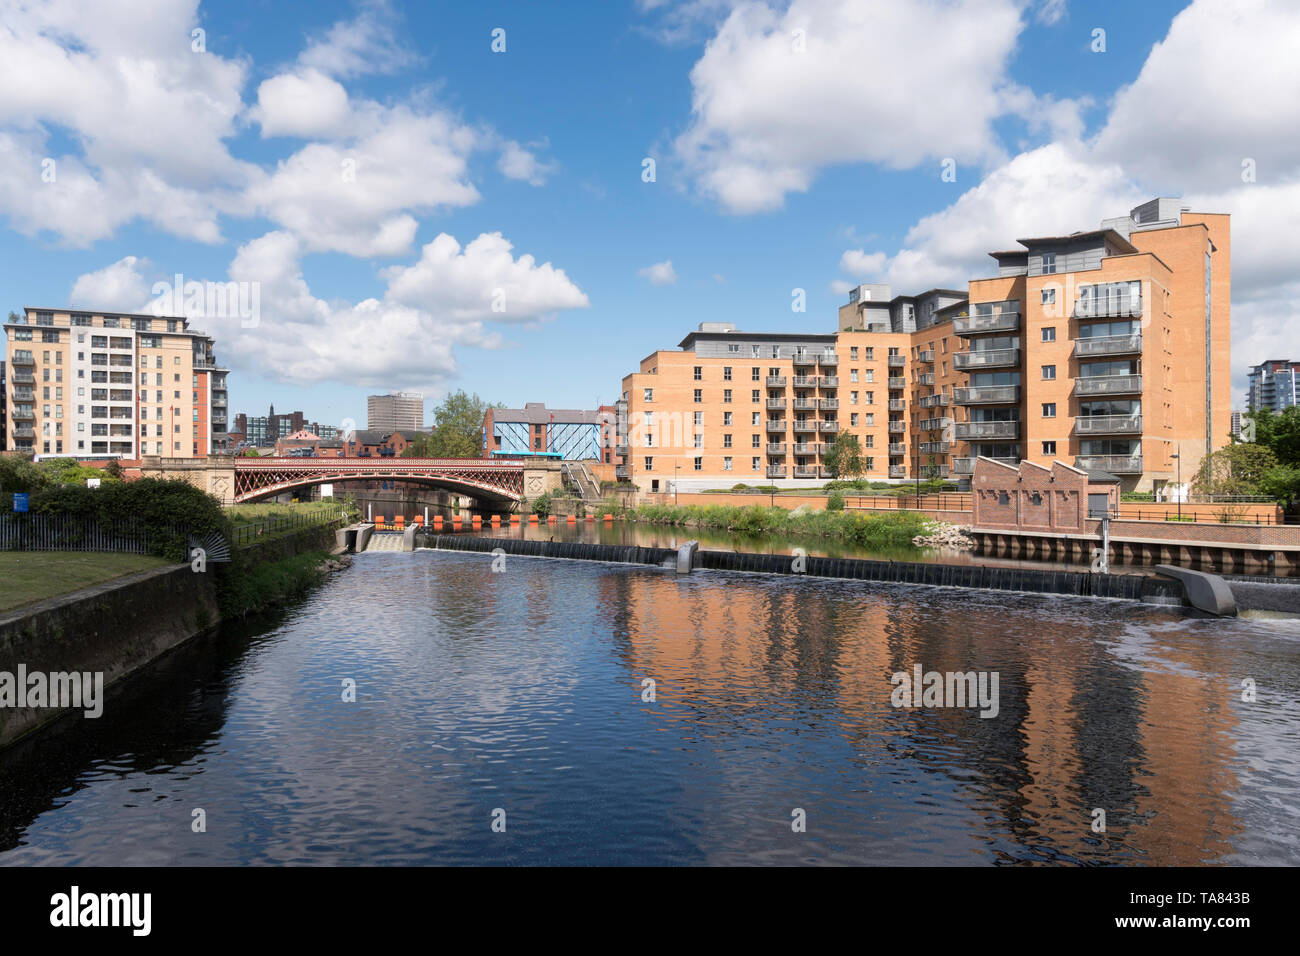 Crown Point Bridge over the river Aire and riverside apartment buildings in Leeds, Yorkshire, England, UK - Stock Image